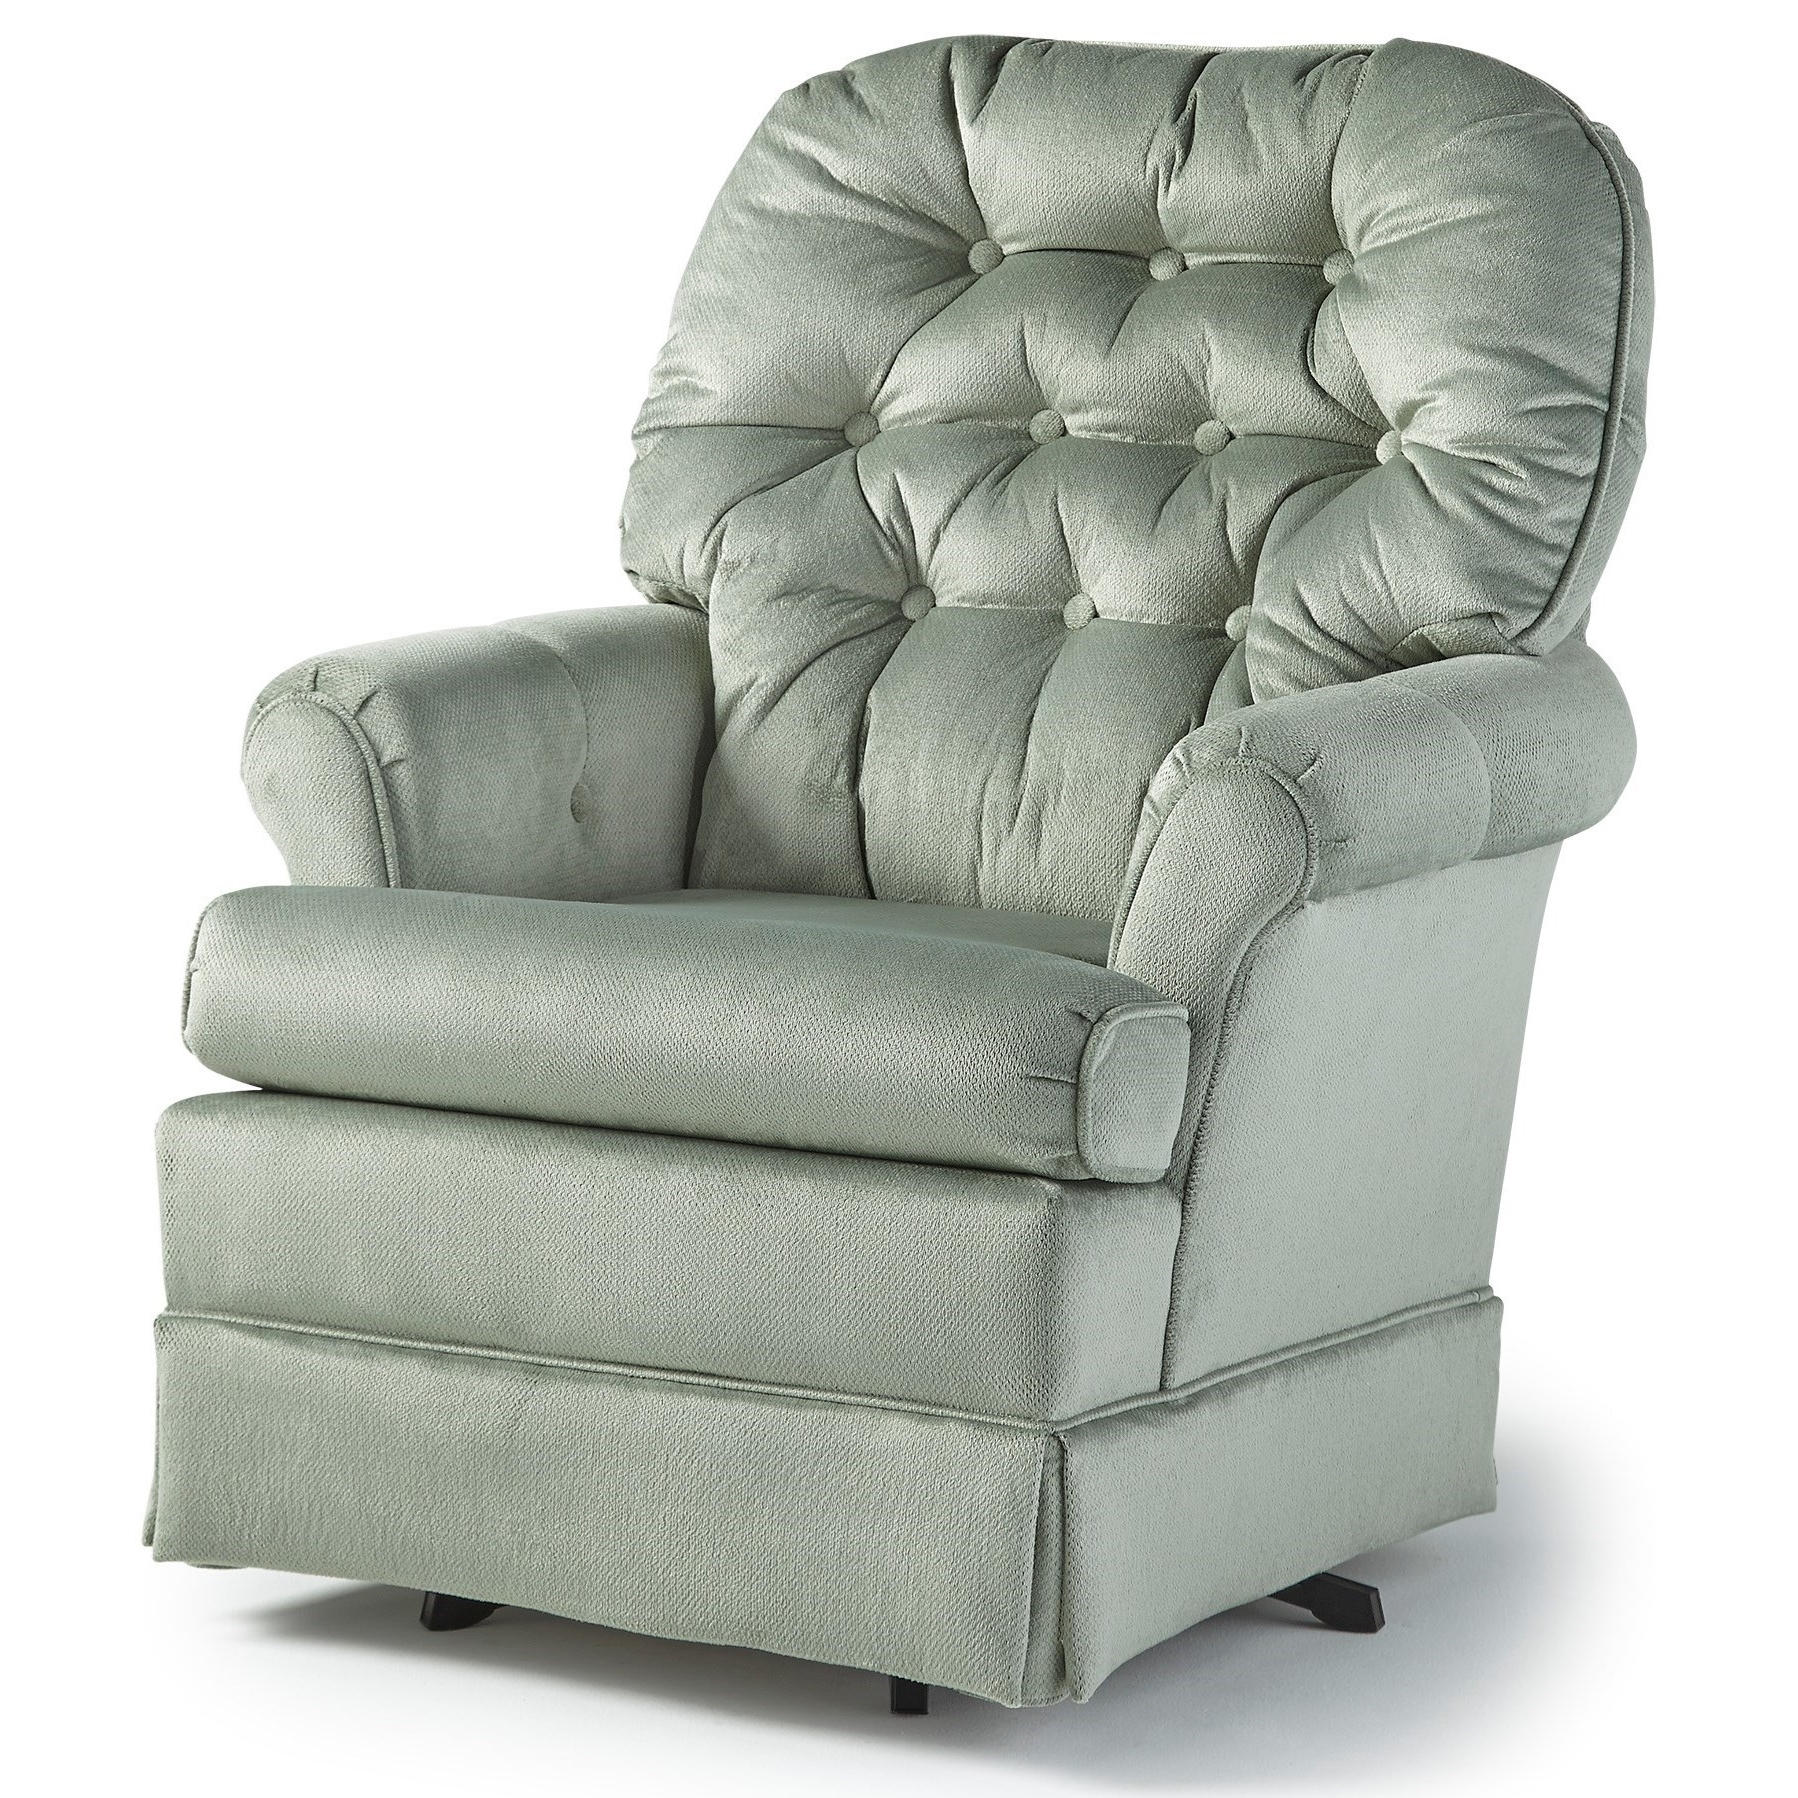 Well Liked Best Home Furnishings Swivel Glide Chairs Marla Swivel Rocker Chair Throughout Swivel Rocking Chairs (View 15 of 15)